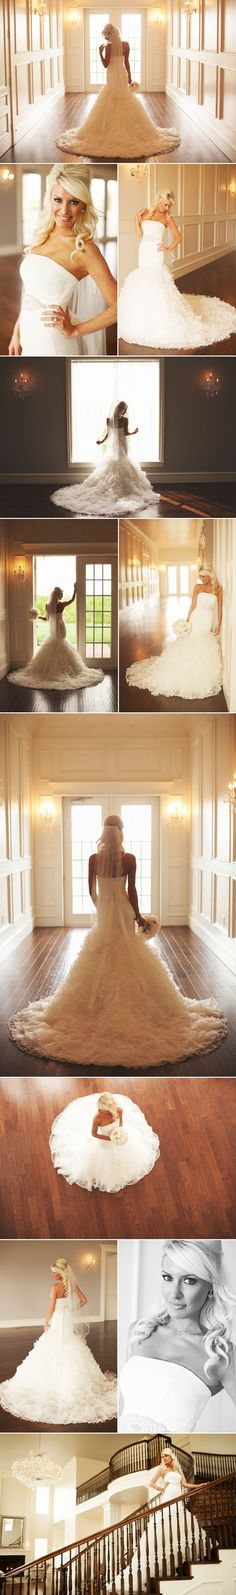 Bride photo poses. I love all of these!